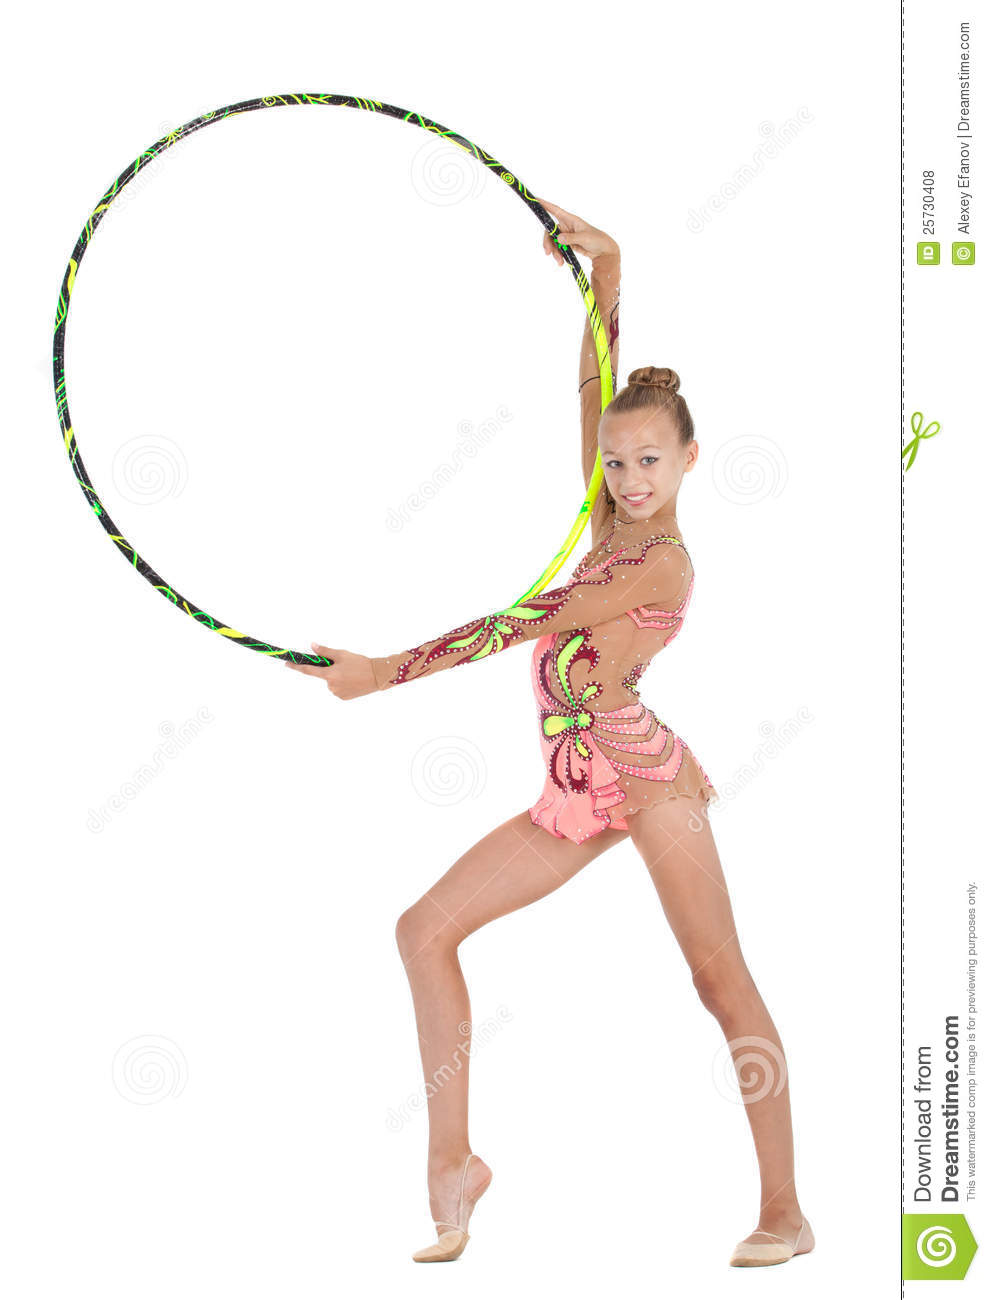 Young gymnast performs with the hoop